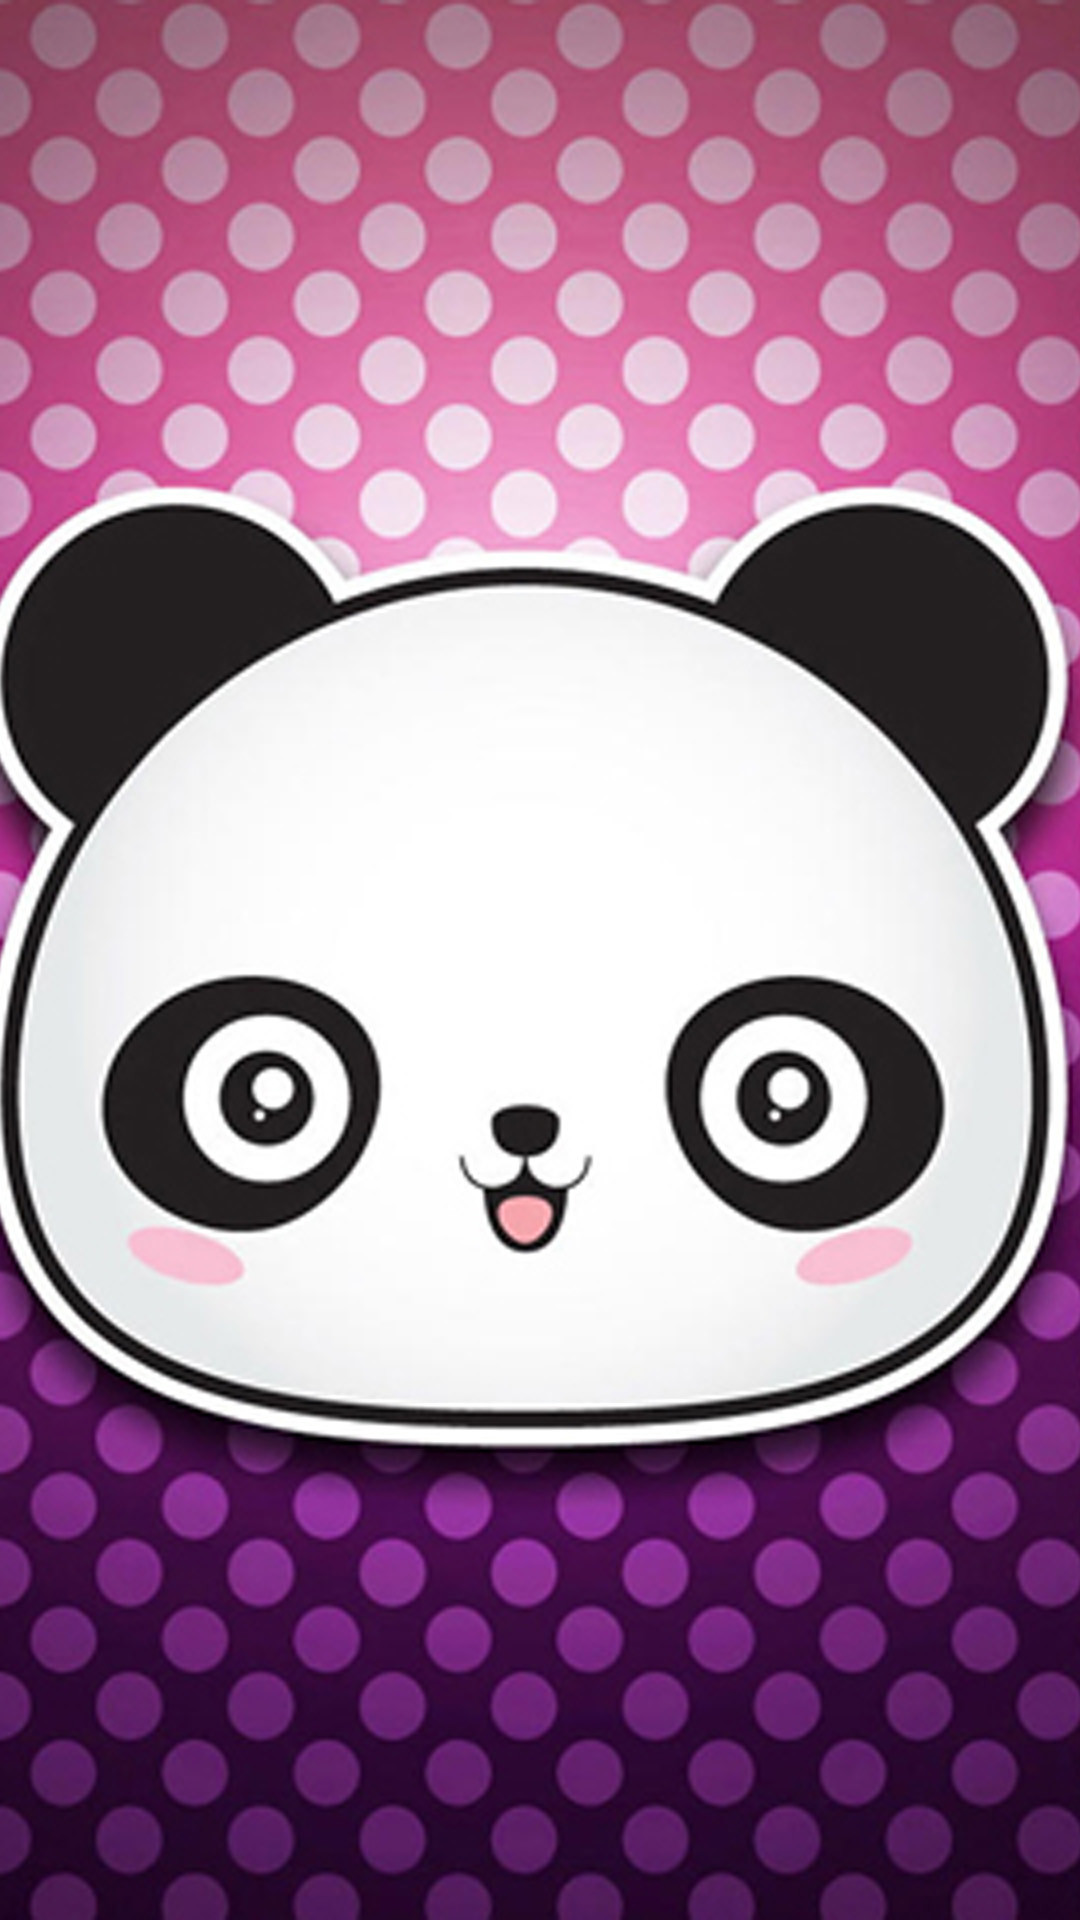 1080x1920 Cute panda Galaxy S5 Wallpapers | Samsung Galaxy S5 Wallpapers